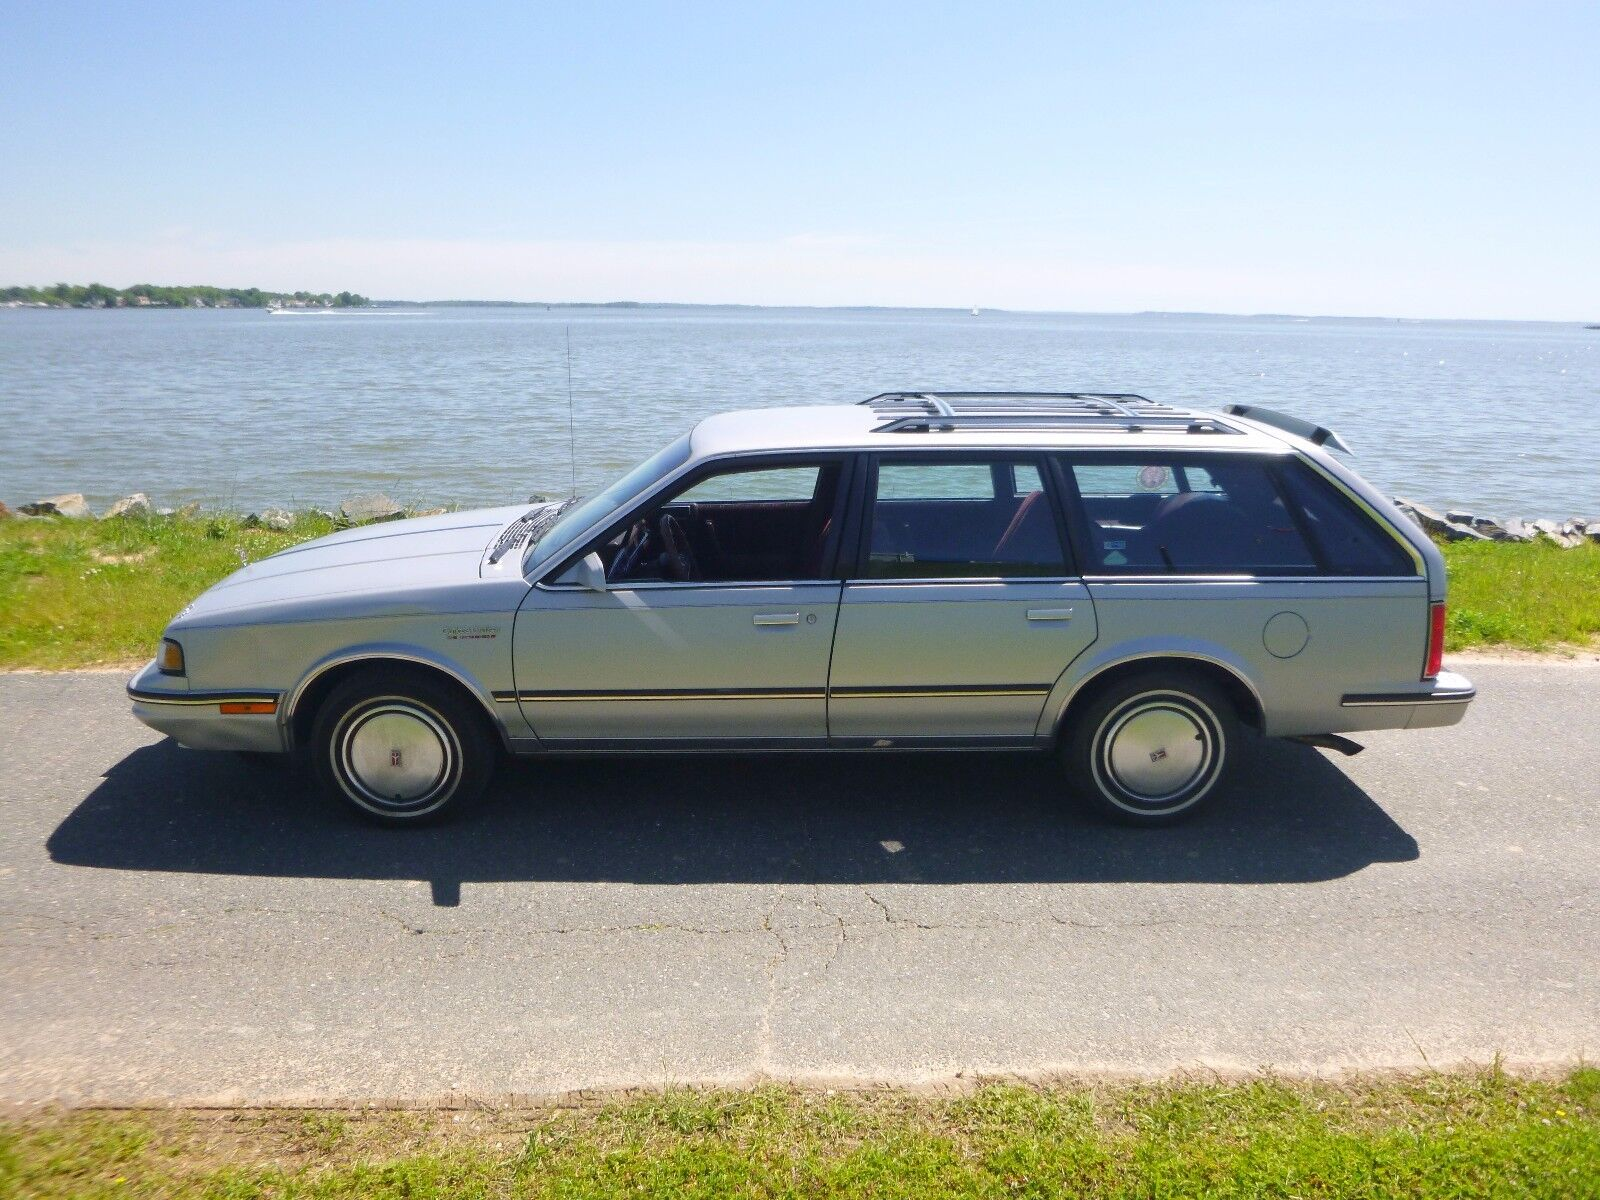 1988 olds cutlass ciera wagon one owner low miles no reserve used oldsmobile ciera for sale in. Black Bedroom Furniture Sets. Home Design Ideas